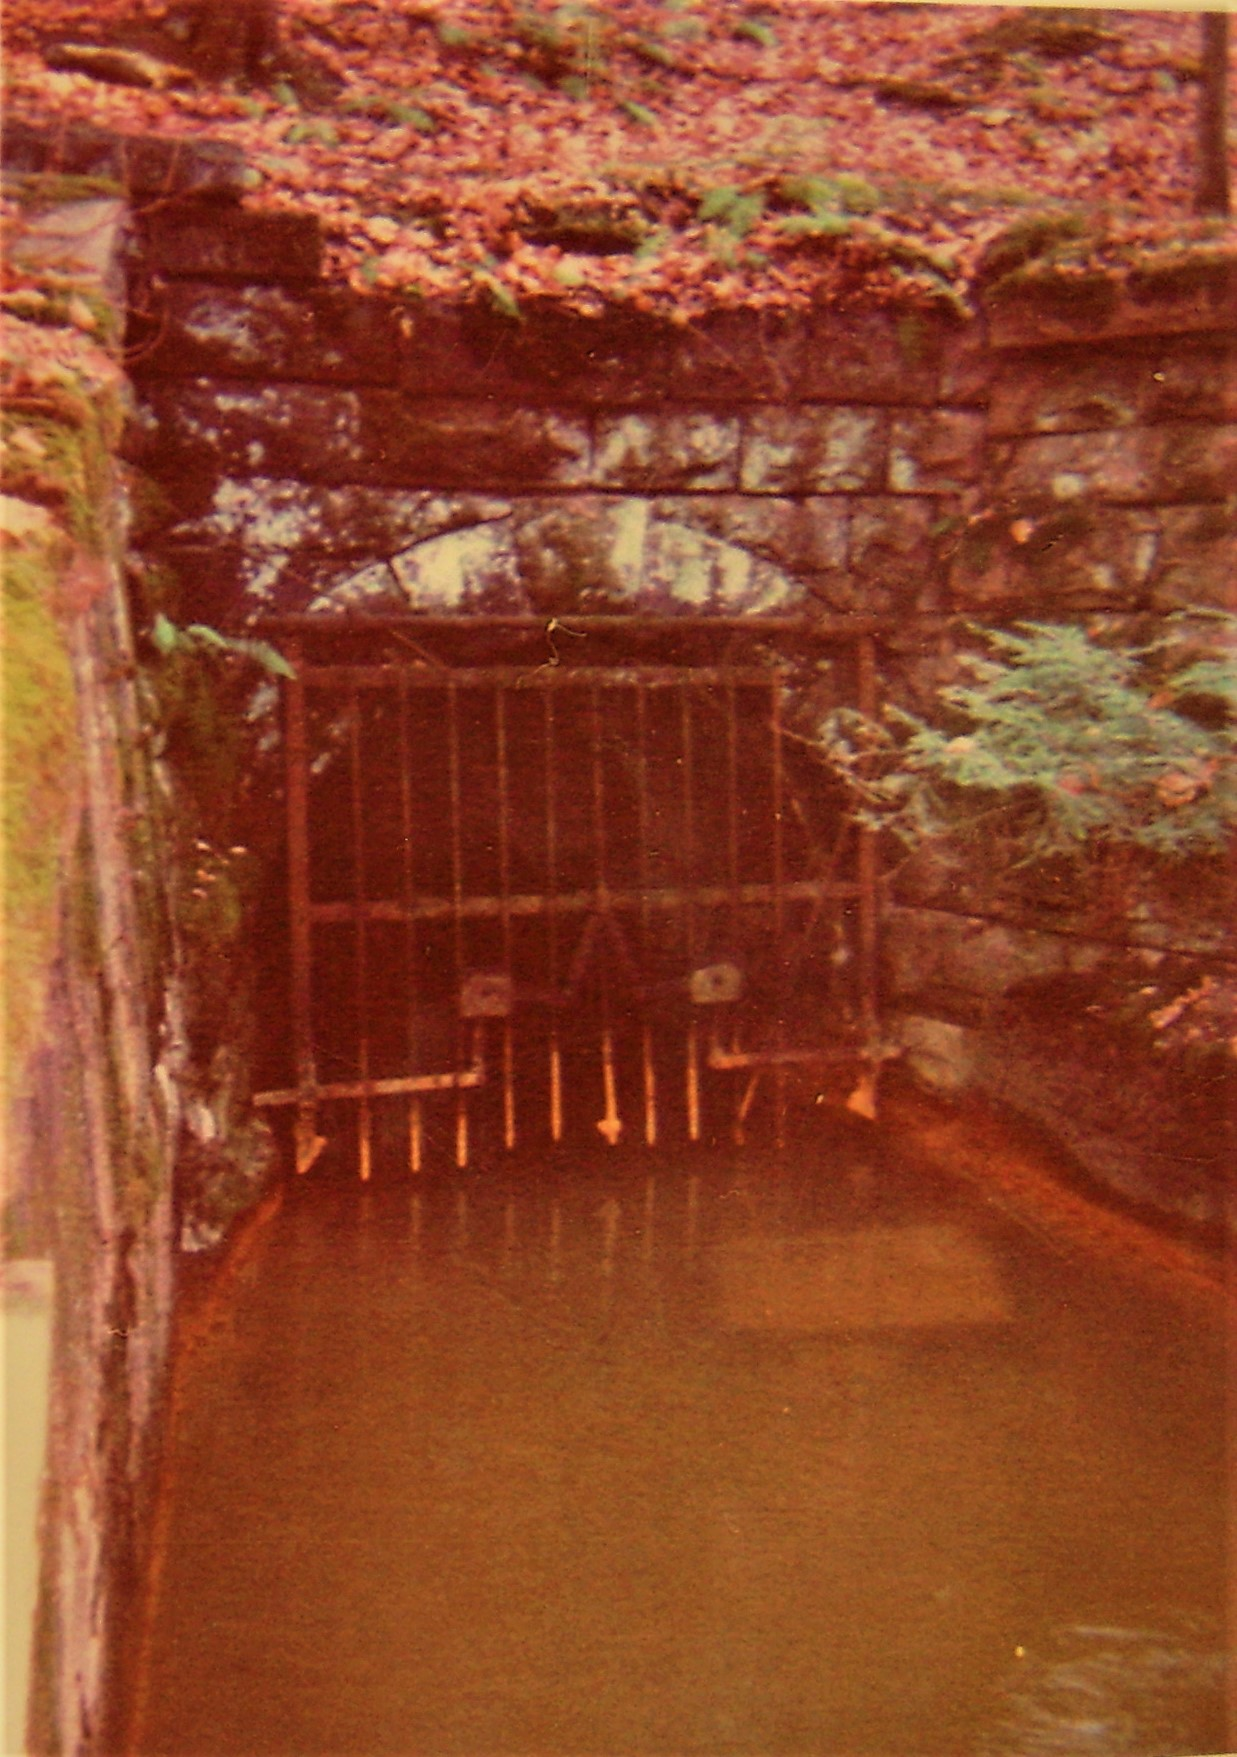 The Jeddo Tunnel, A Discharge in Freeland, PA. Image by Joe Michel, 2001.